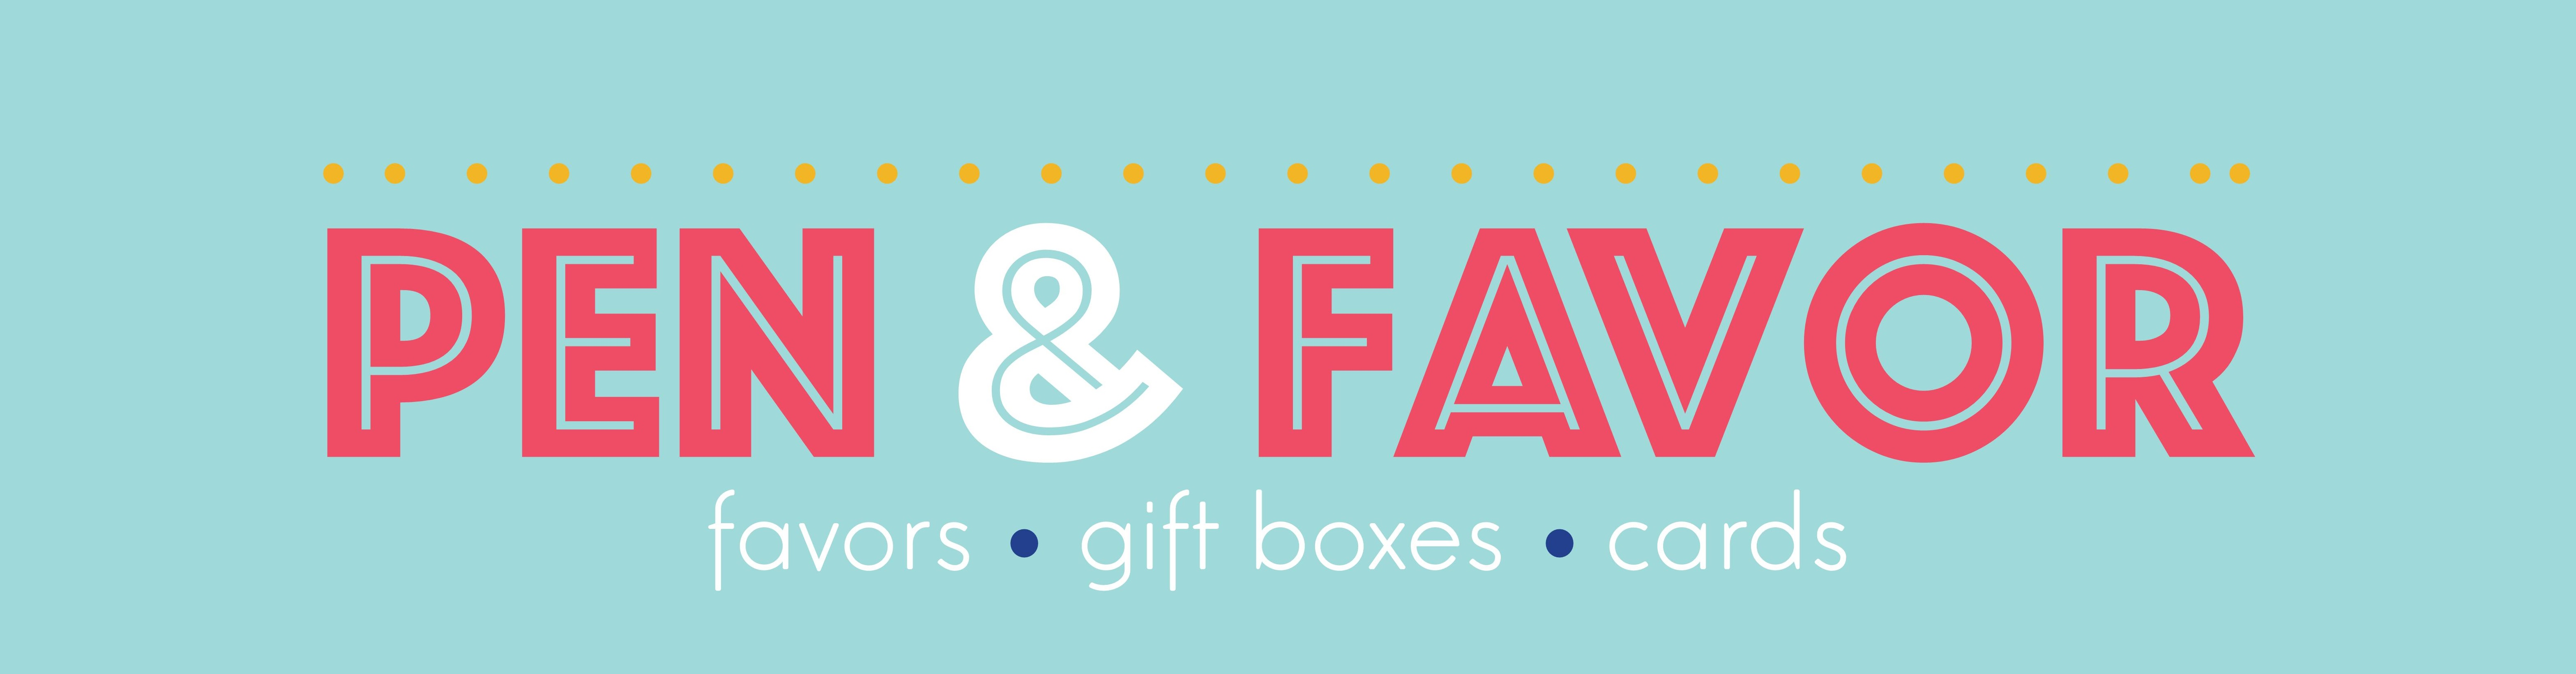 Pen & favor | Handmade wedding favors, boxes, bags and greeting ...